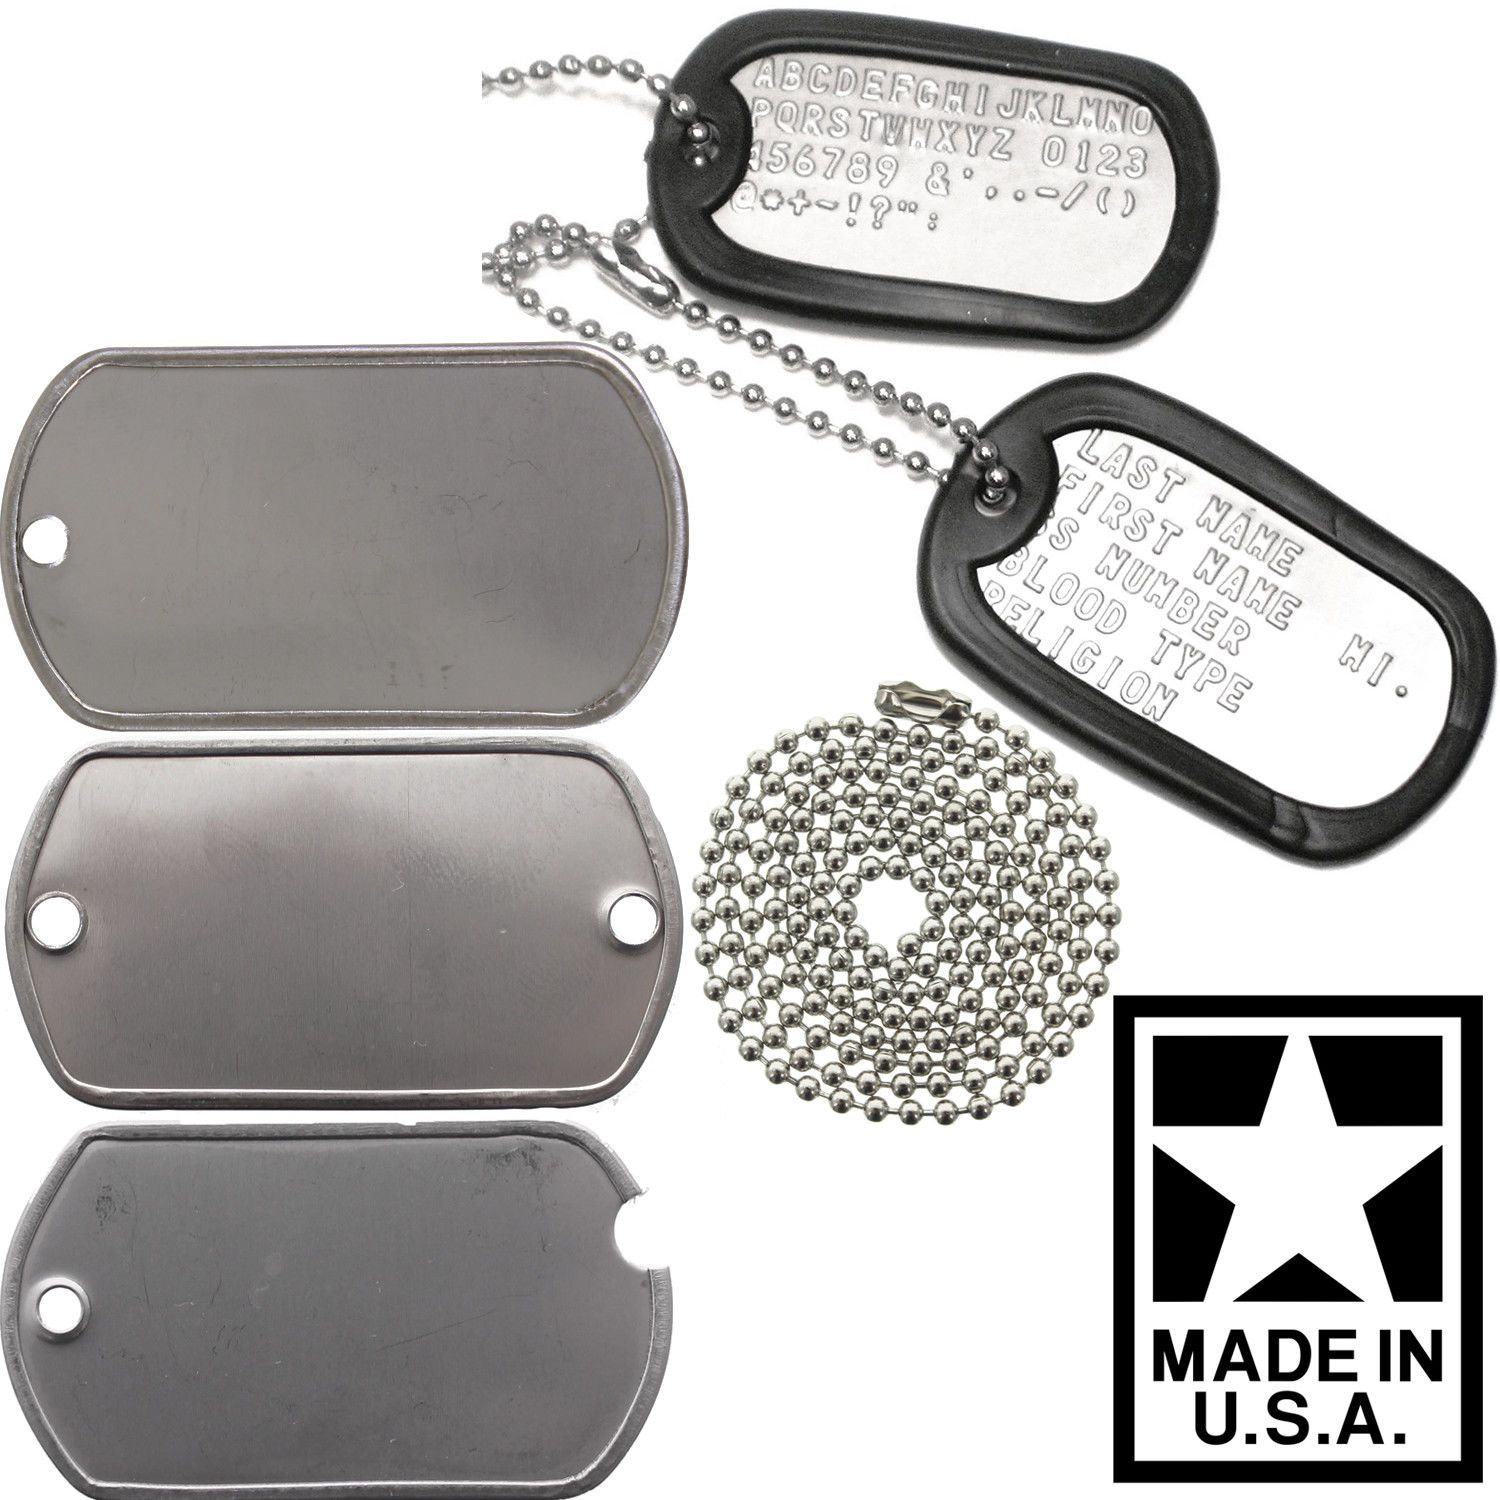 Made In USA Custom Printed Dog Tags Personalized Military GI Army ID Dogtag  Set d16c5e52921